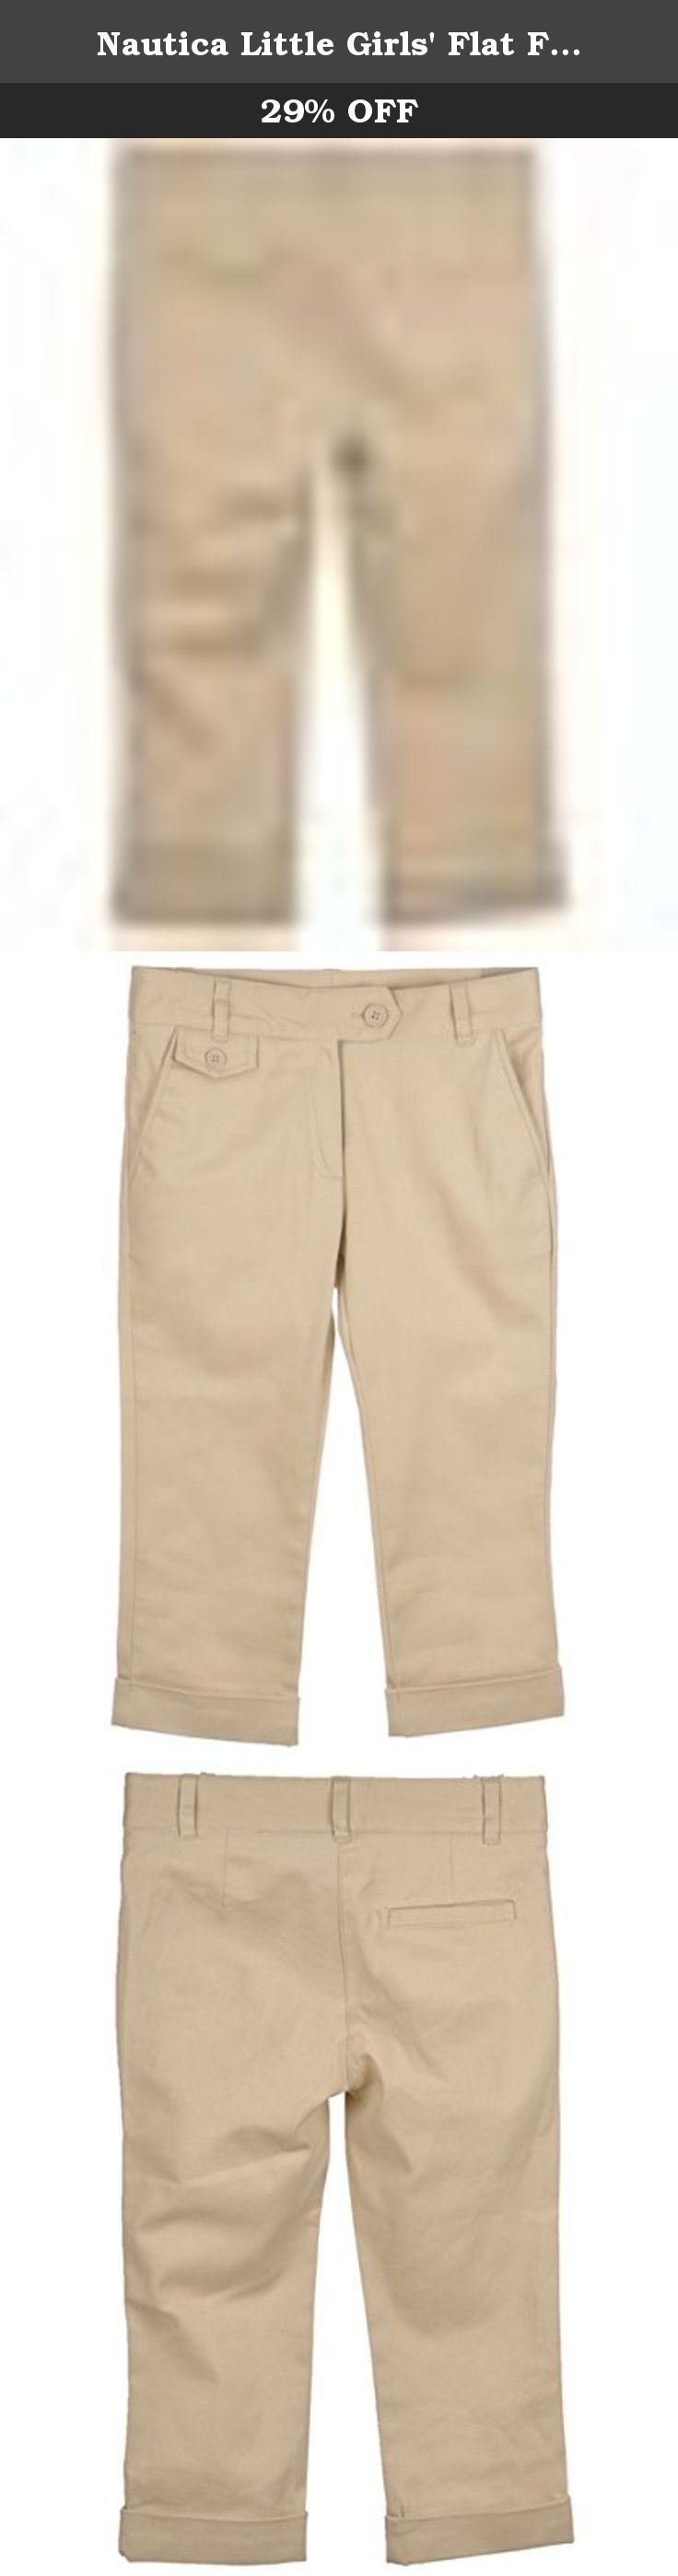 Nautica Little Girls' Flat Front Stretch Capri Pants - khaki, 5. For comfortable pants that are classroom appropriate, trust Nautica; their clothes have long been the pinnacle of sophistication and style. These capris feature stretch twill construction, a flat front, and pre-folded cuffs. A button flap accent on the front pocket and a single welt back pocket add touches of distinction. 97% Cotton, 3% Spandex Machine Wash Warm Made in China.